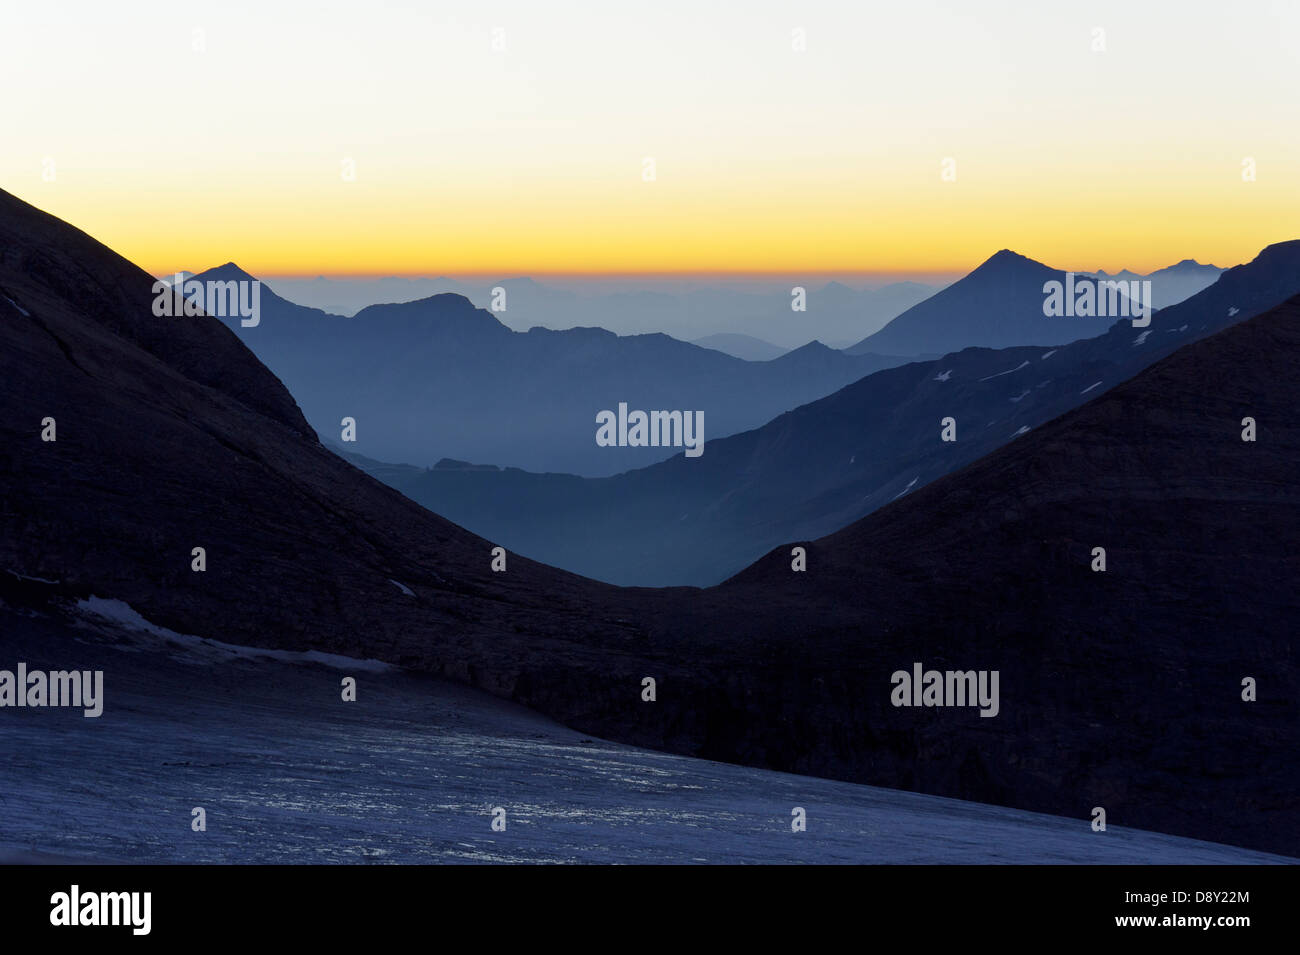 Austria / Carynthia - Before sunrise in Hohe Tauern National Park, seen from Oberwalder Mountain refuge. - Stock Image